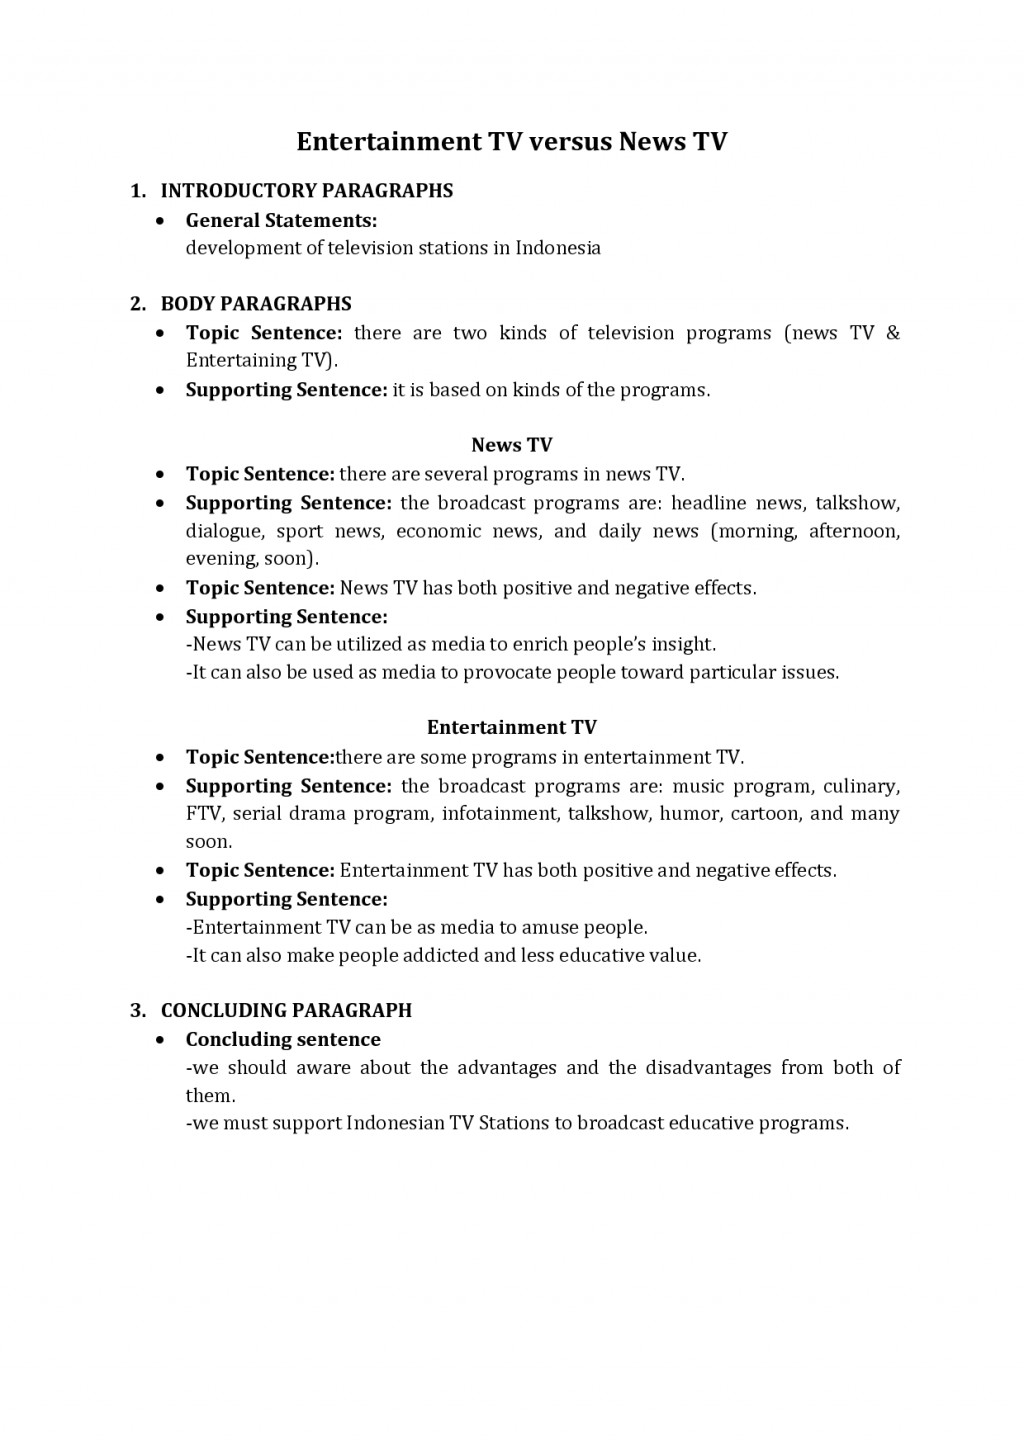 005 Fbunmxinib How To Write An Essay Outline Excellent High School Large